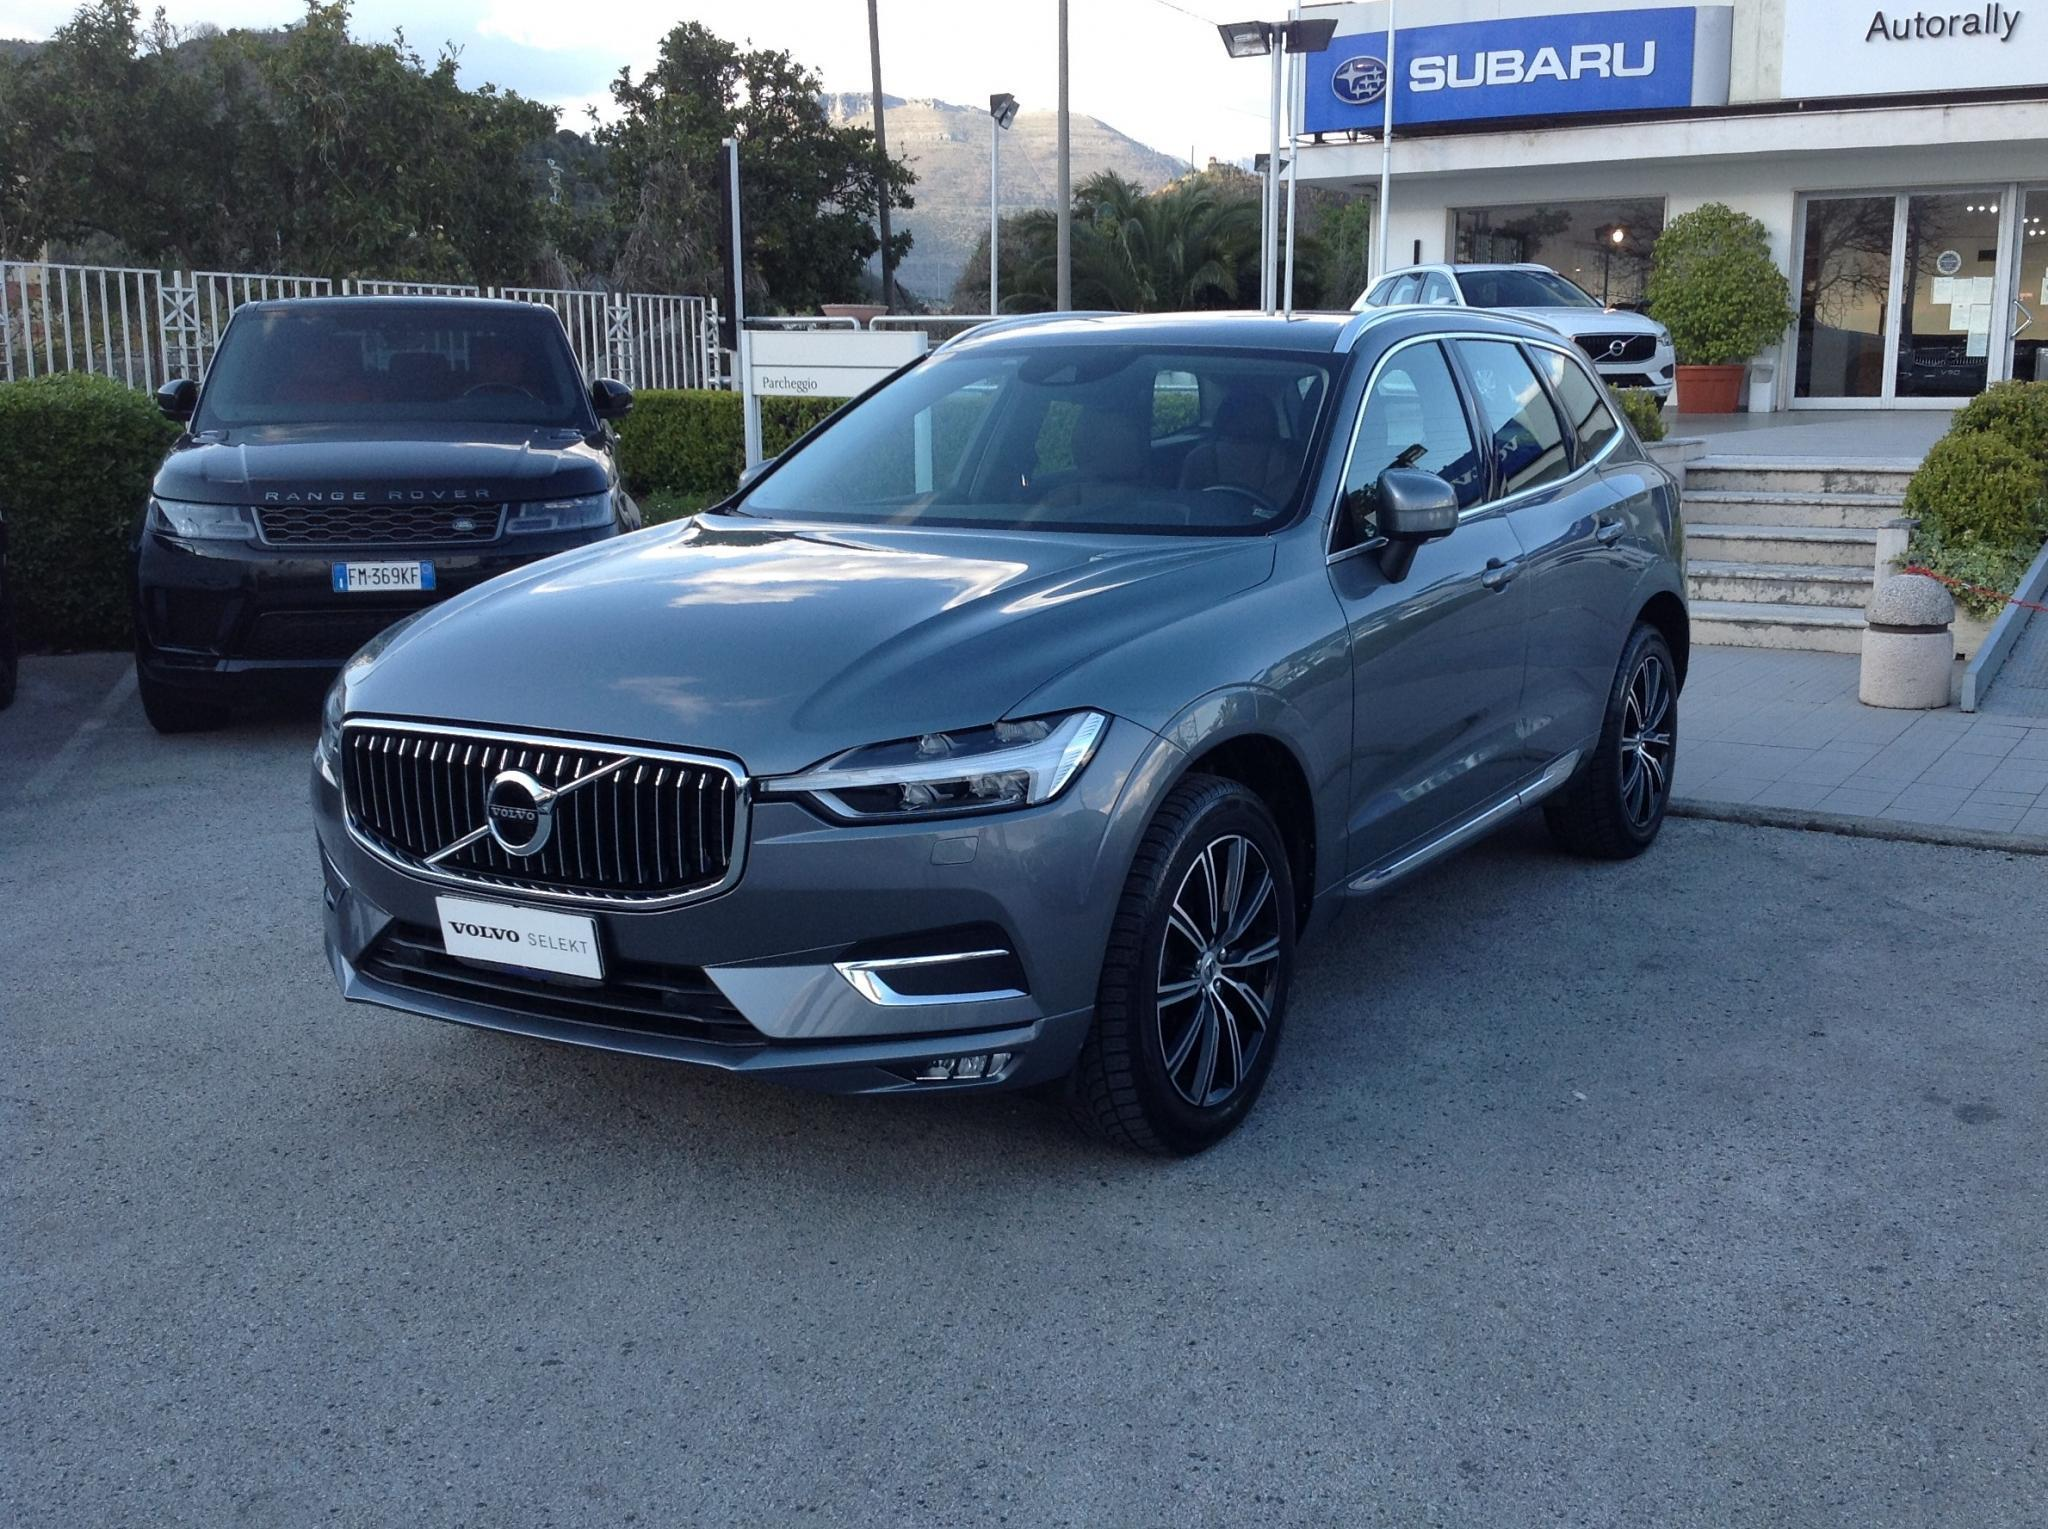 Volvo XC 60 D4 AWD Geartronic Inscription